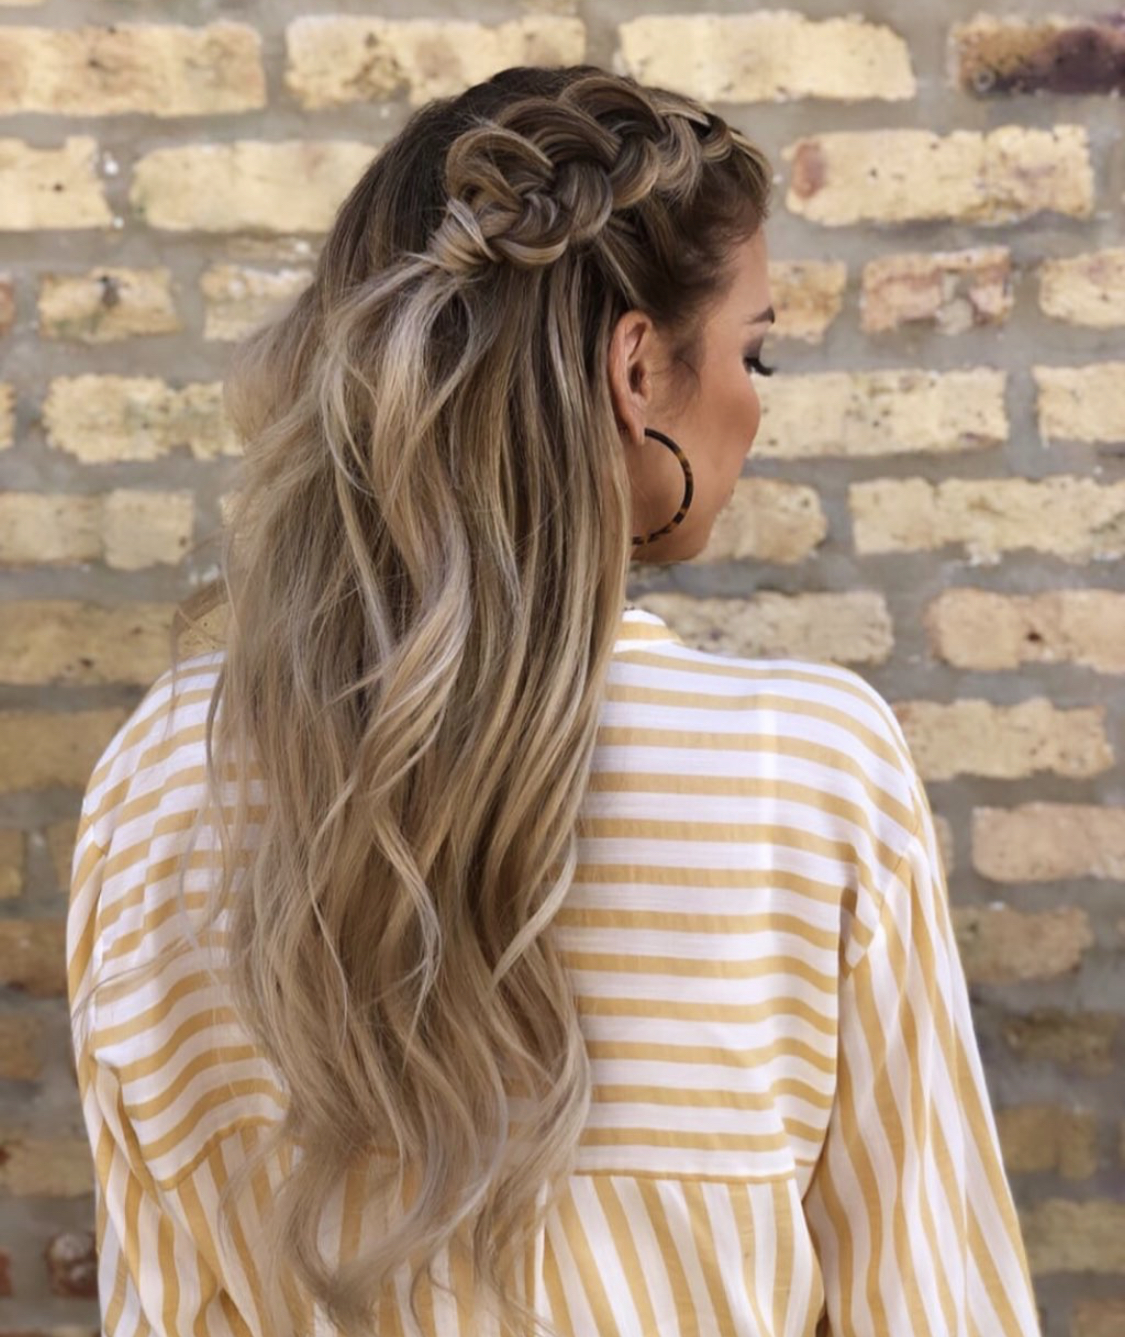 hair extensions, chicago hair extensions, Chicago blogger, beauty blogger, braid ideas, goldplaited, hair coloring, hair ideas, hair style ideas, mom blogger, mommy blogger, travel blogger, hair looks, hair fashion, hair fun